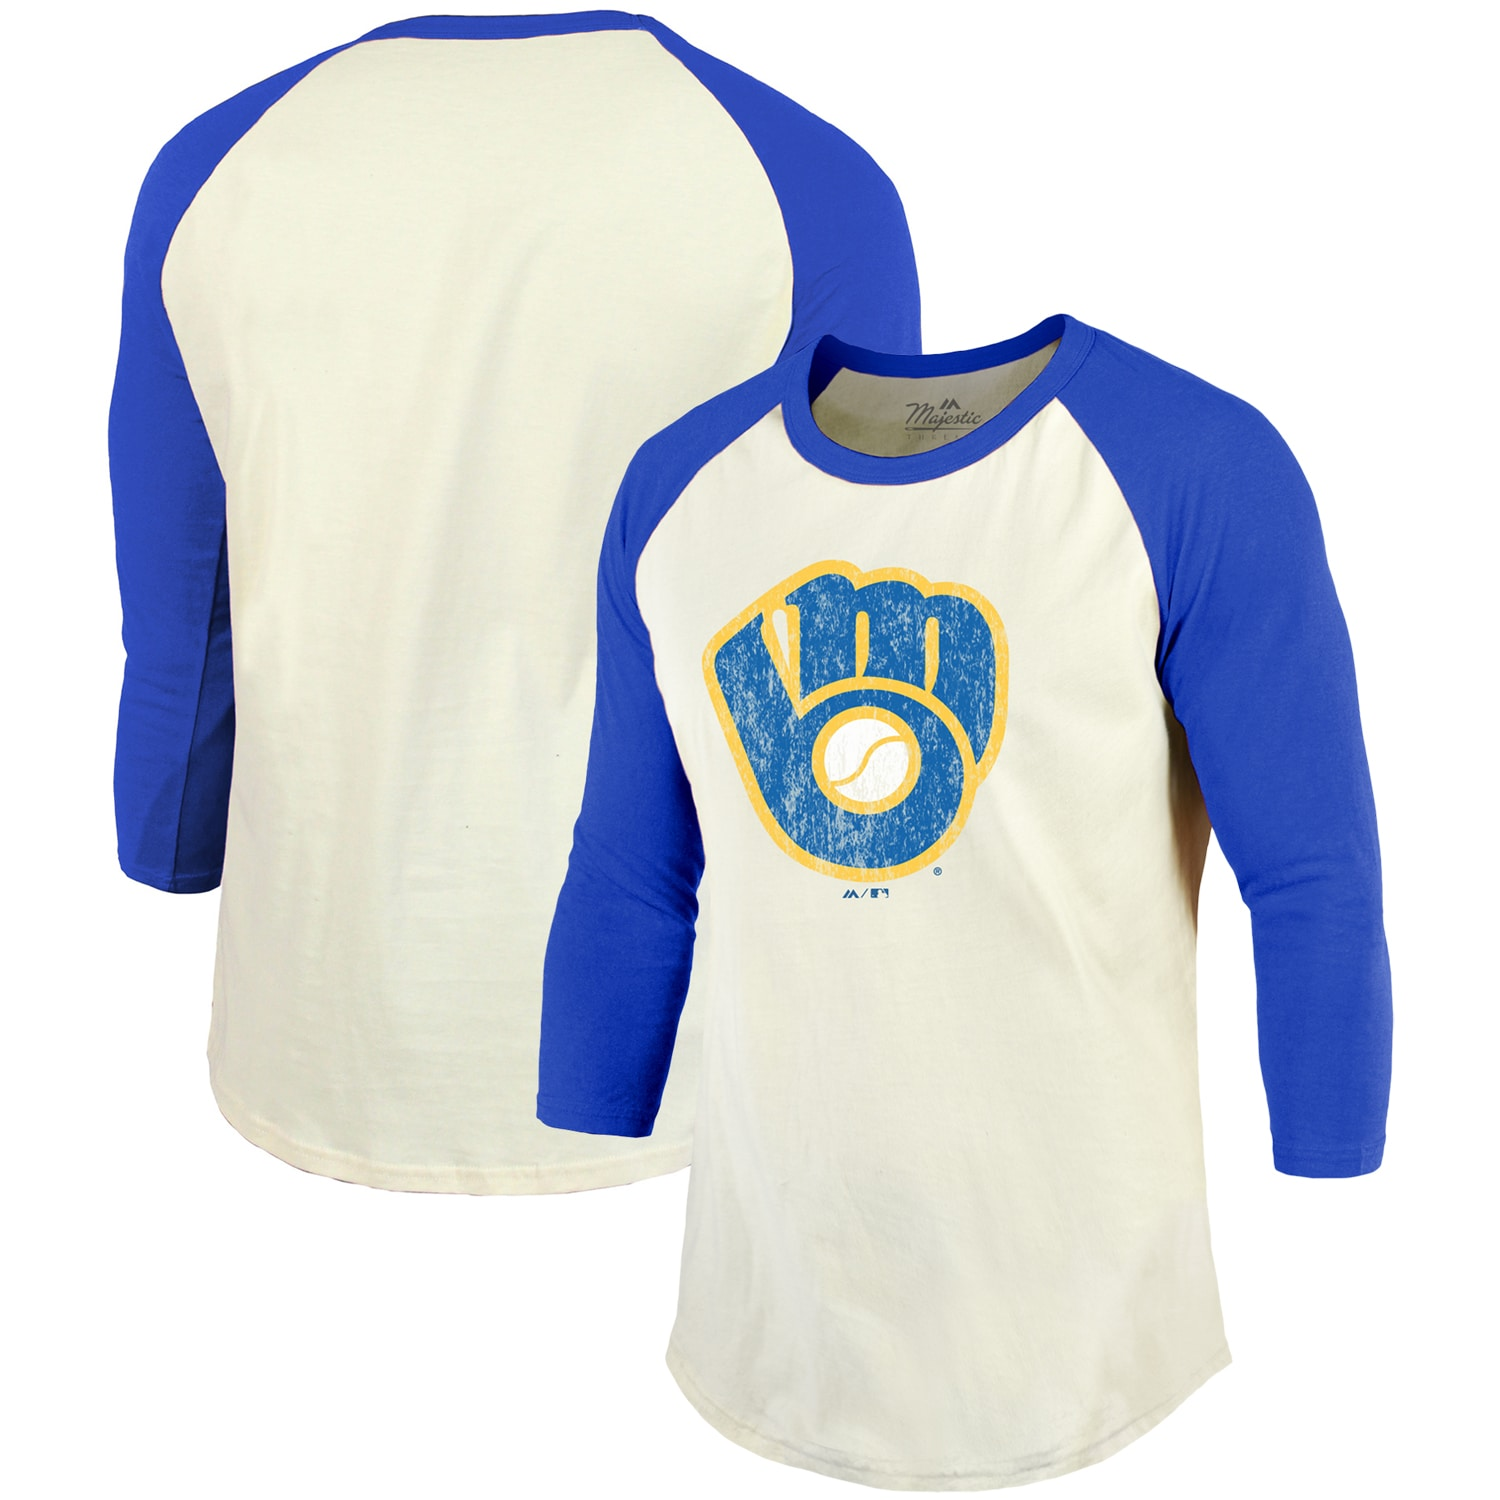 Milwaukee Brewers Majestic Threads Cooperstown Collection Raglan 3/4-Sleeve T-Shirt - Cream/Royal